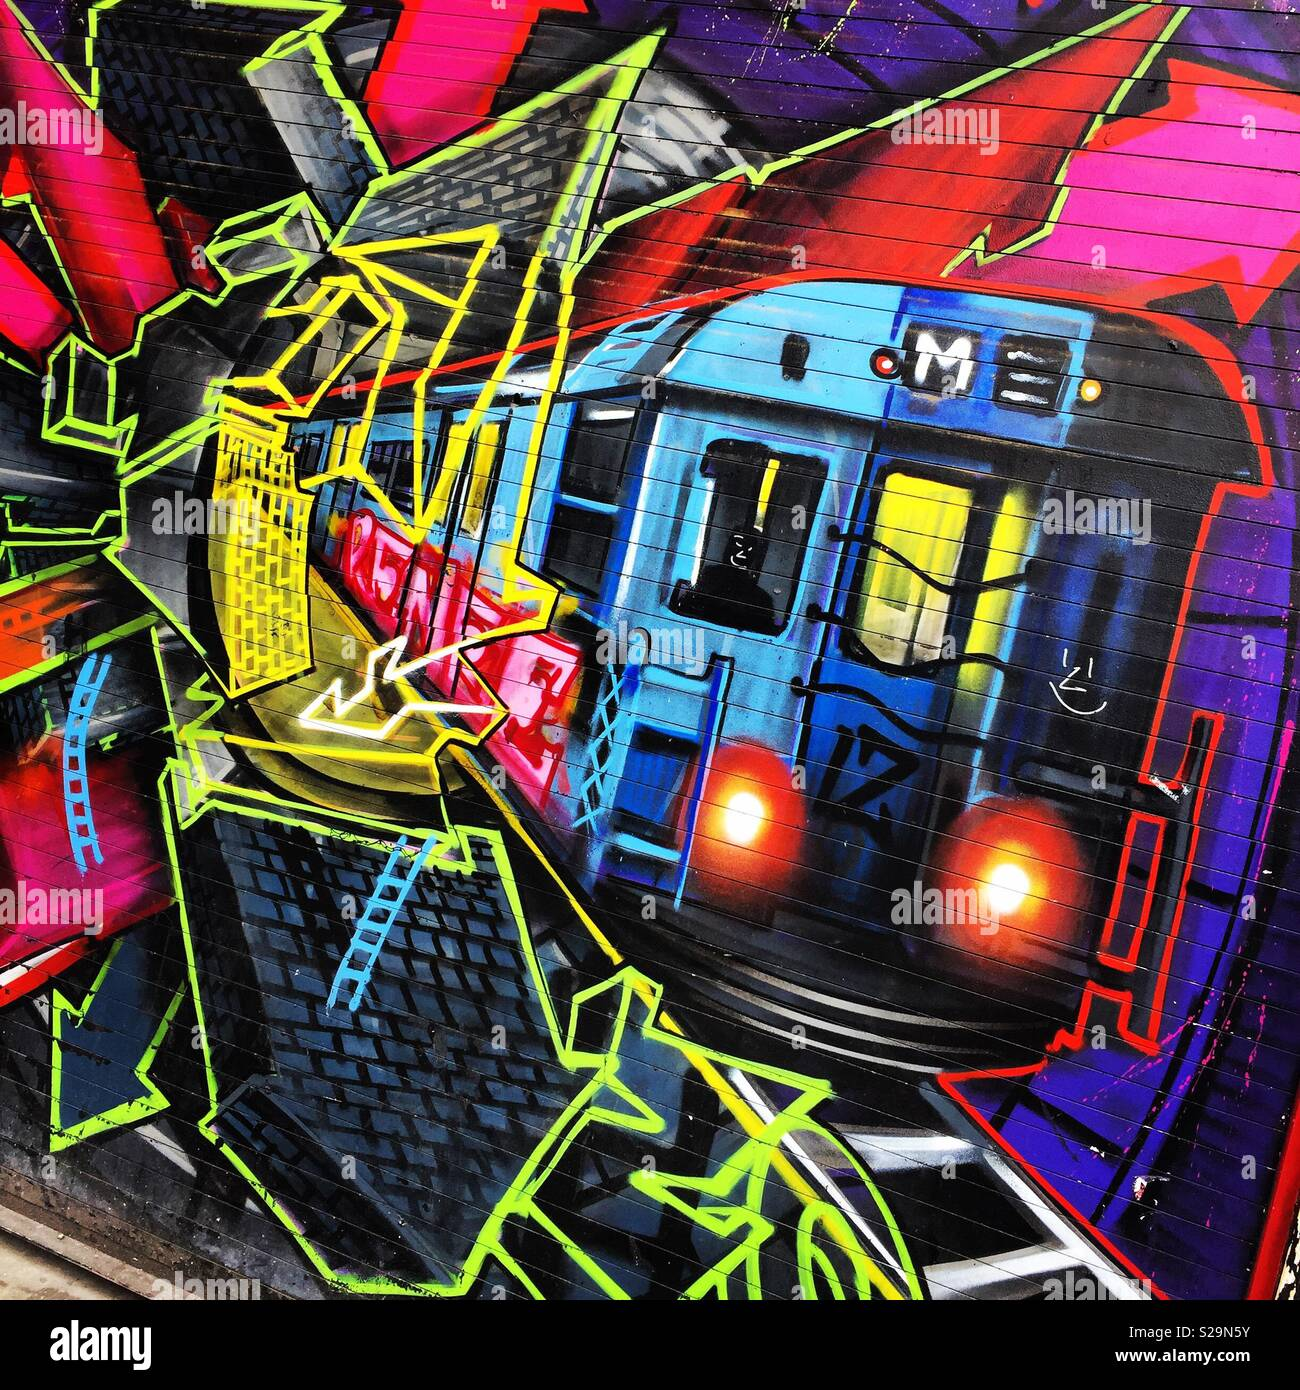 Metro train street art - Stock Image